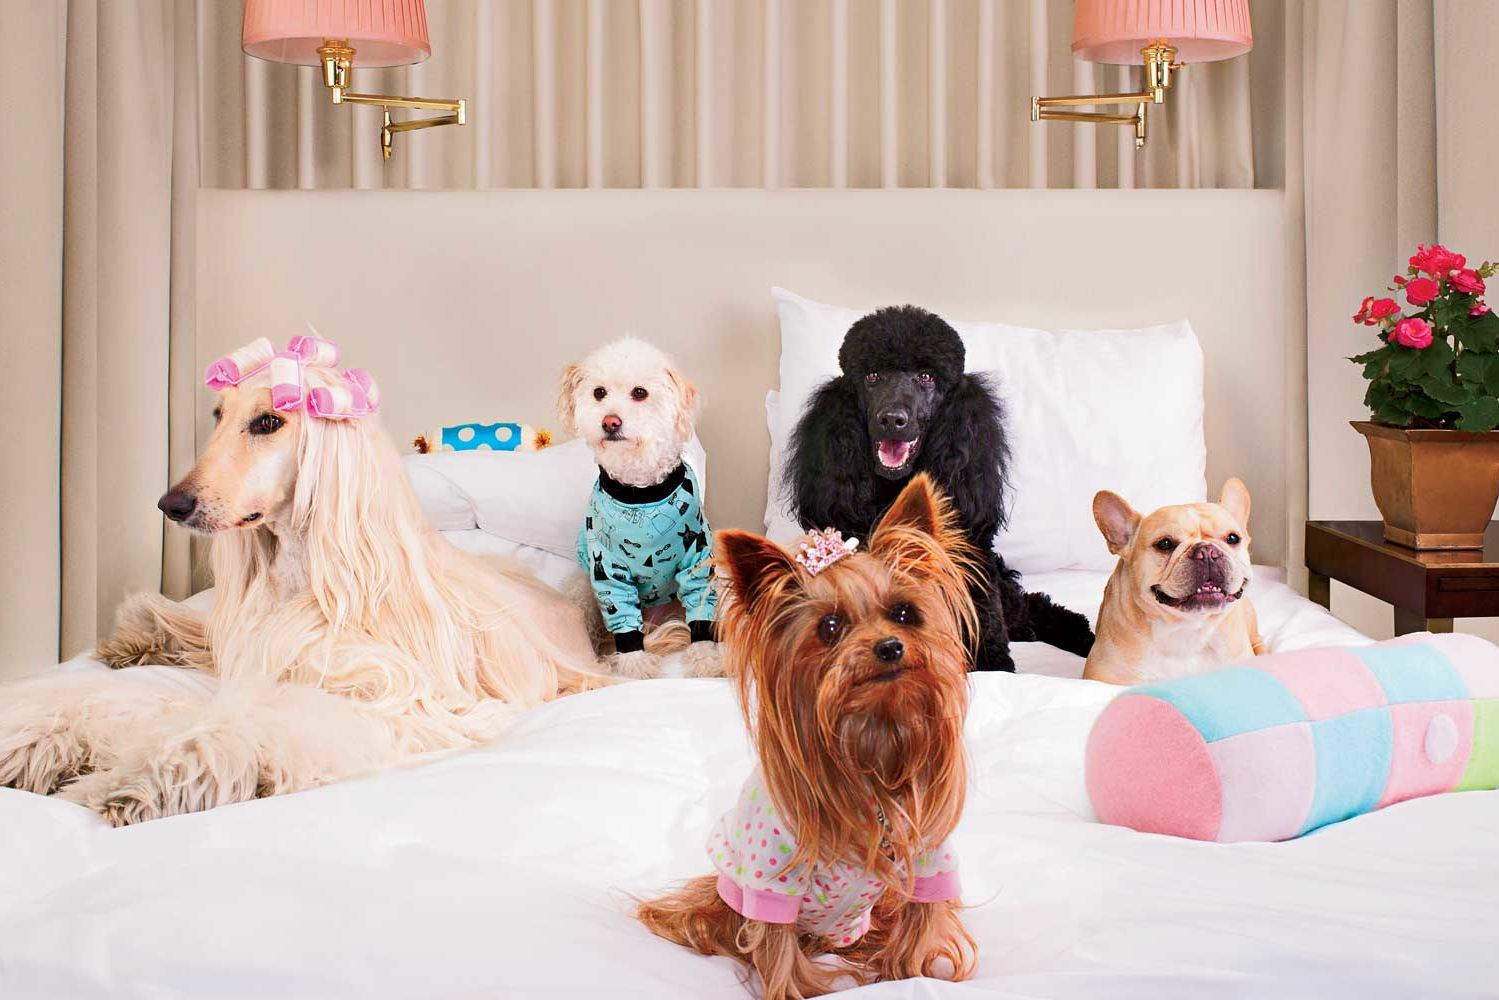 Canopy by Hilton's Dog Policy Will Pamper Your Pet As Much As You